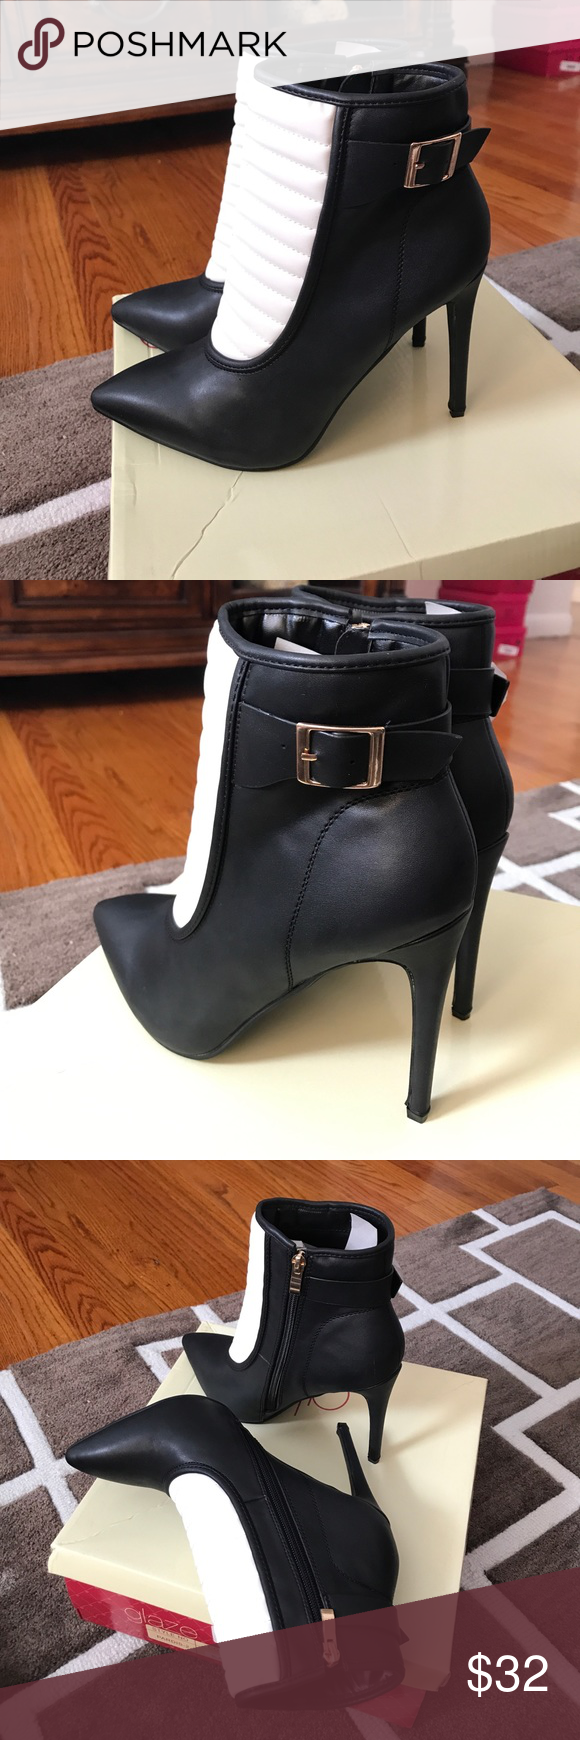 Brand new Brand new glaze Shoes Heeled Boots Clothes